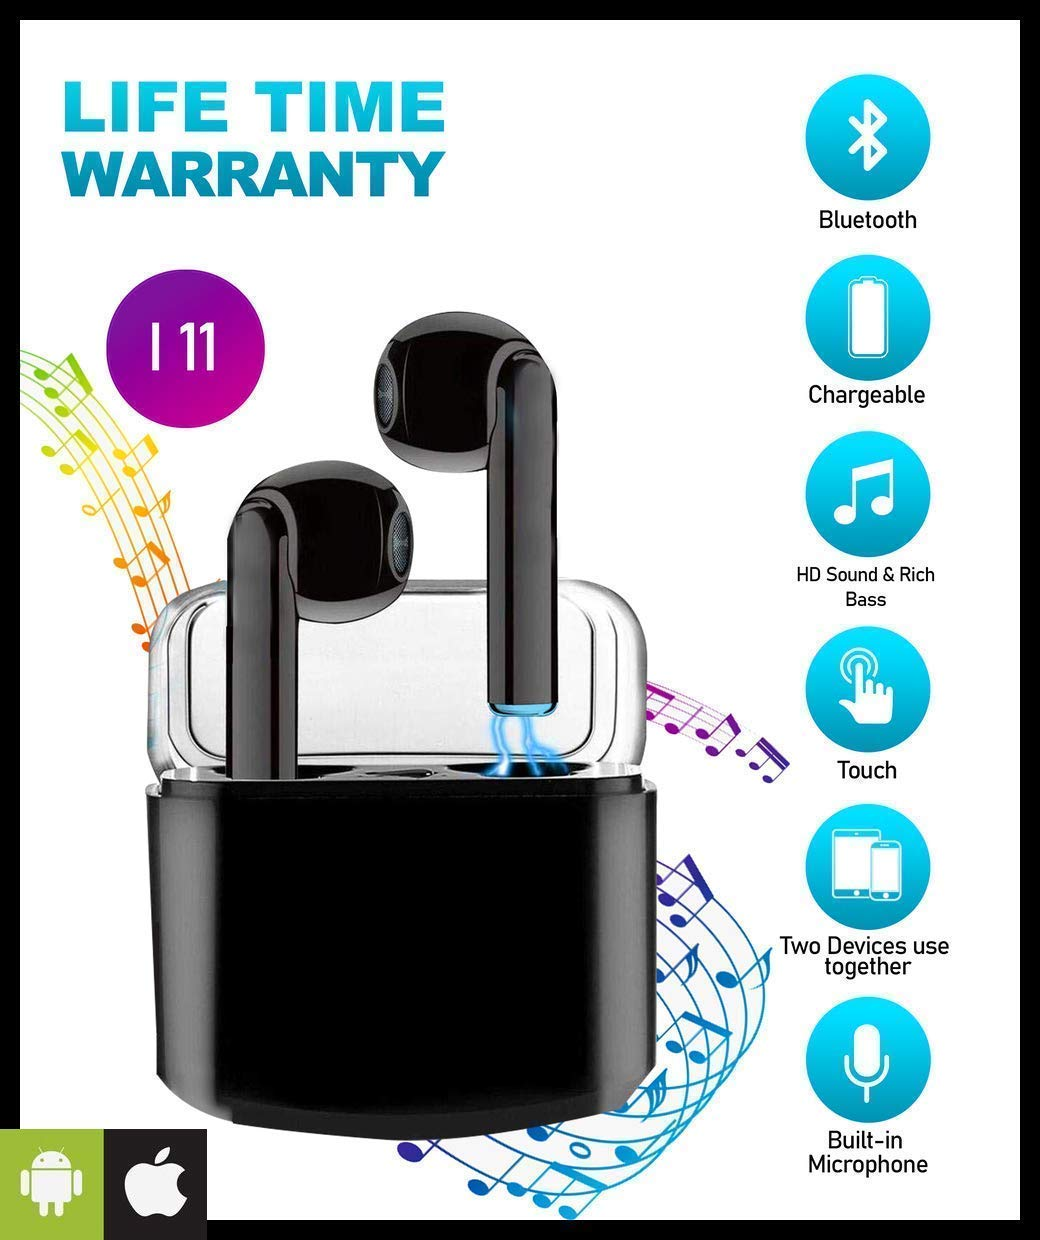 【2020 New Version】 Priish I11 TWS Sound Wireless Bluetooth Earphone Earbud Headphone Handsfree Sports Running Sweatproof Compatible iOS Android Noise Cancellation Charging Case Mic